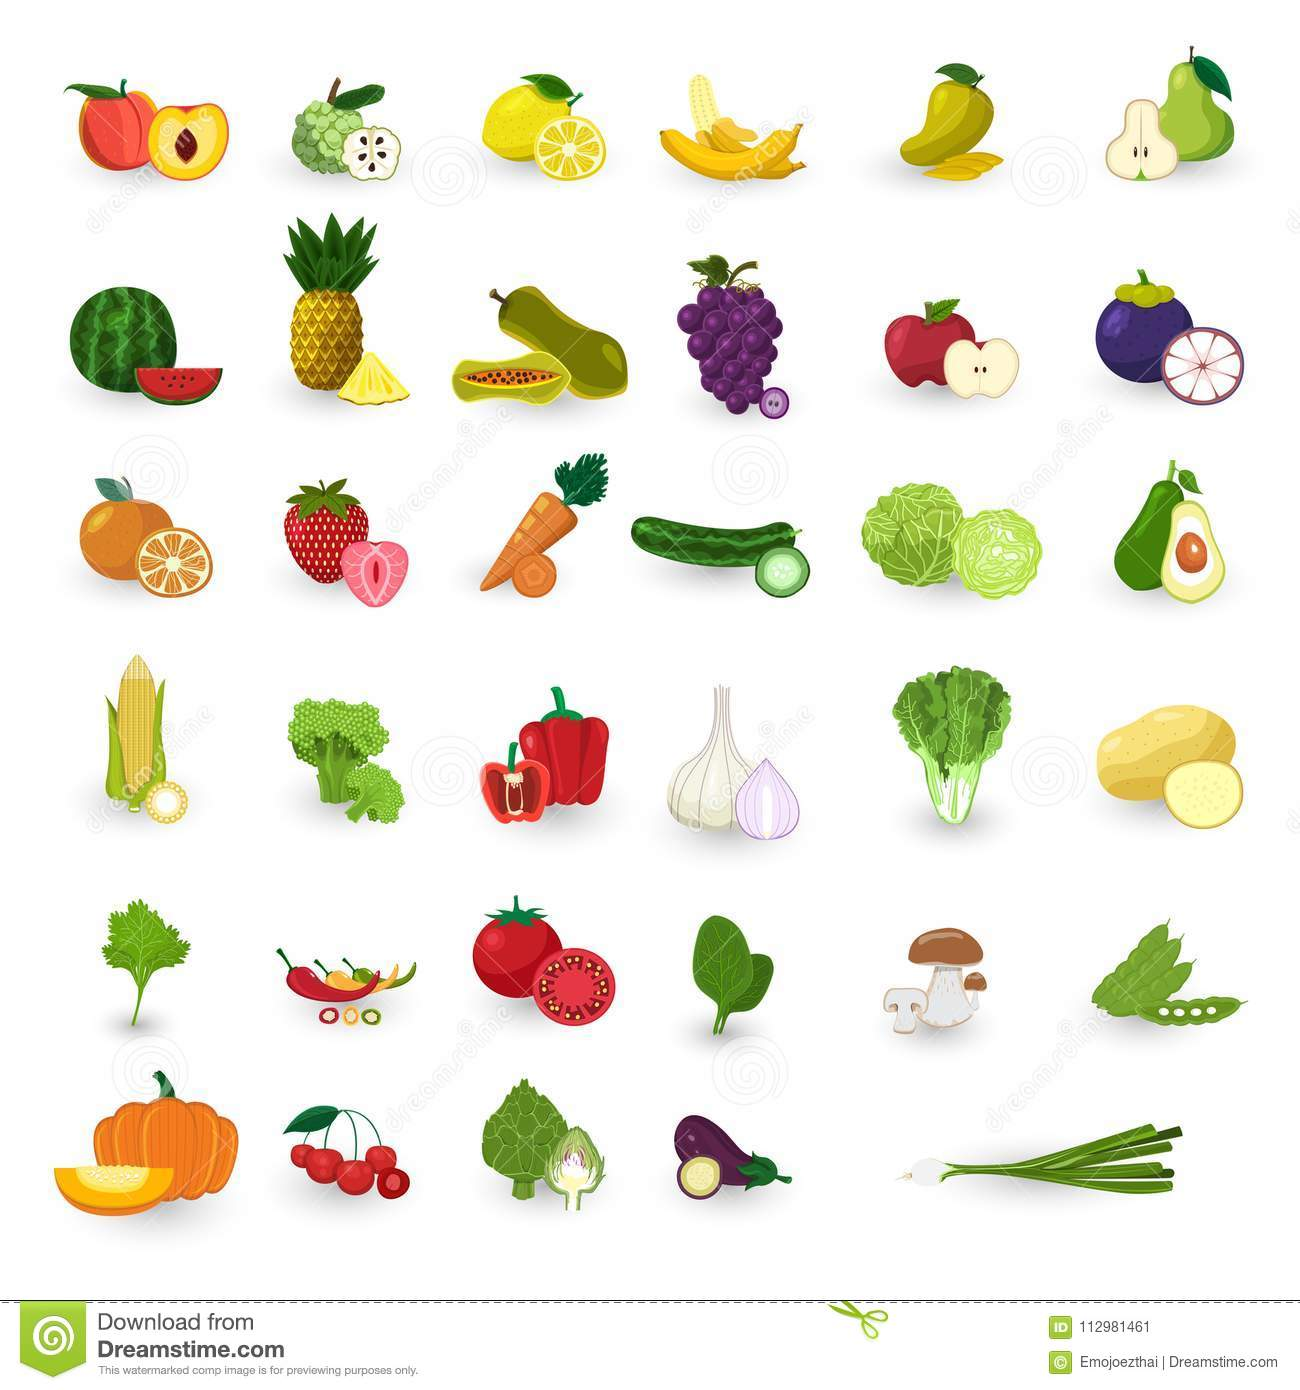 Flat design style fruits and vegetable vector set.